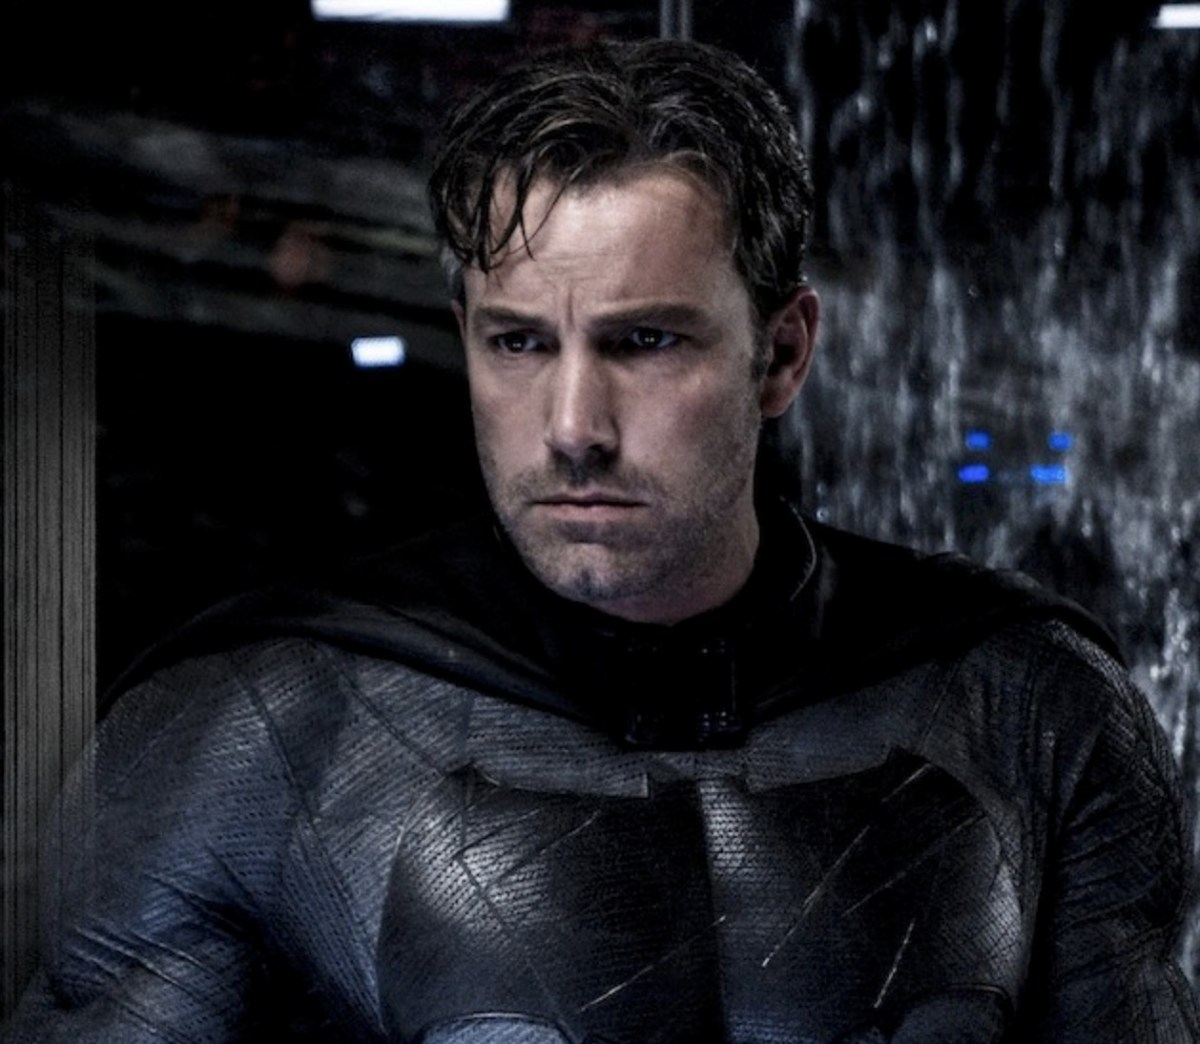 TAKE 2: SUPERHERO RESUME / BEN AFFLECK